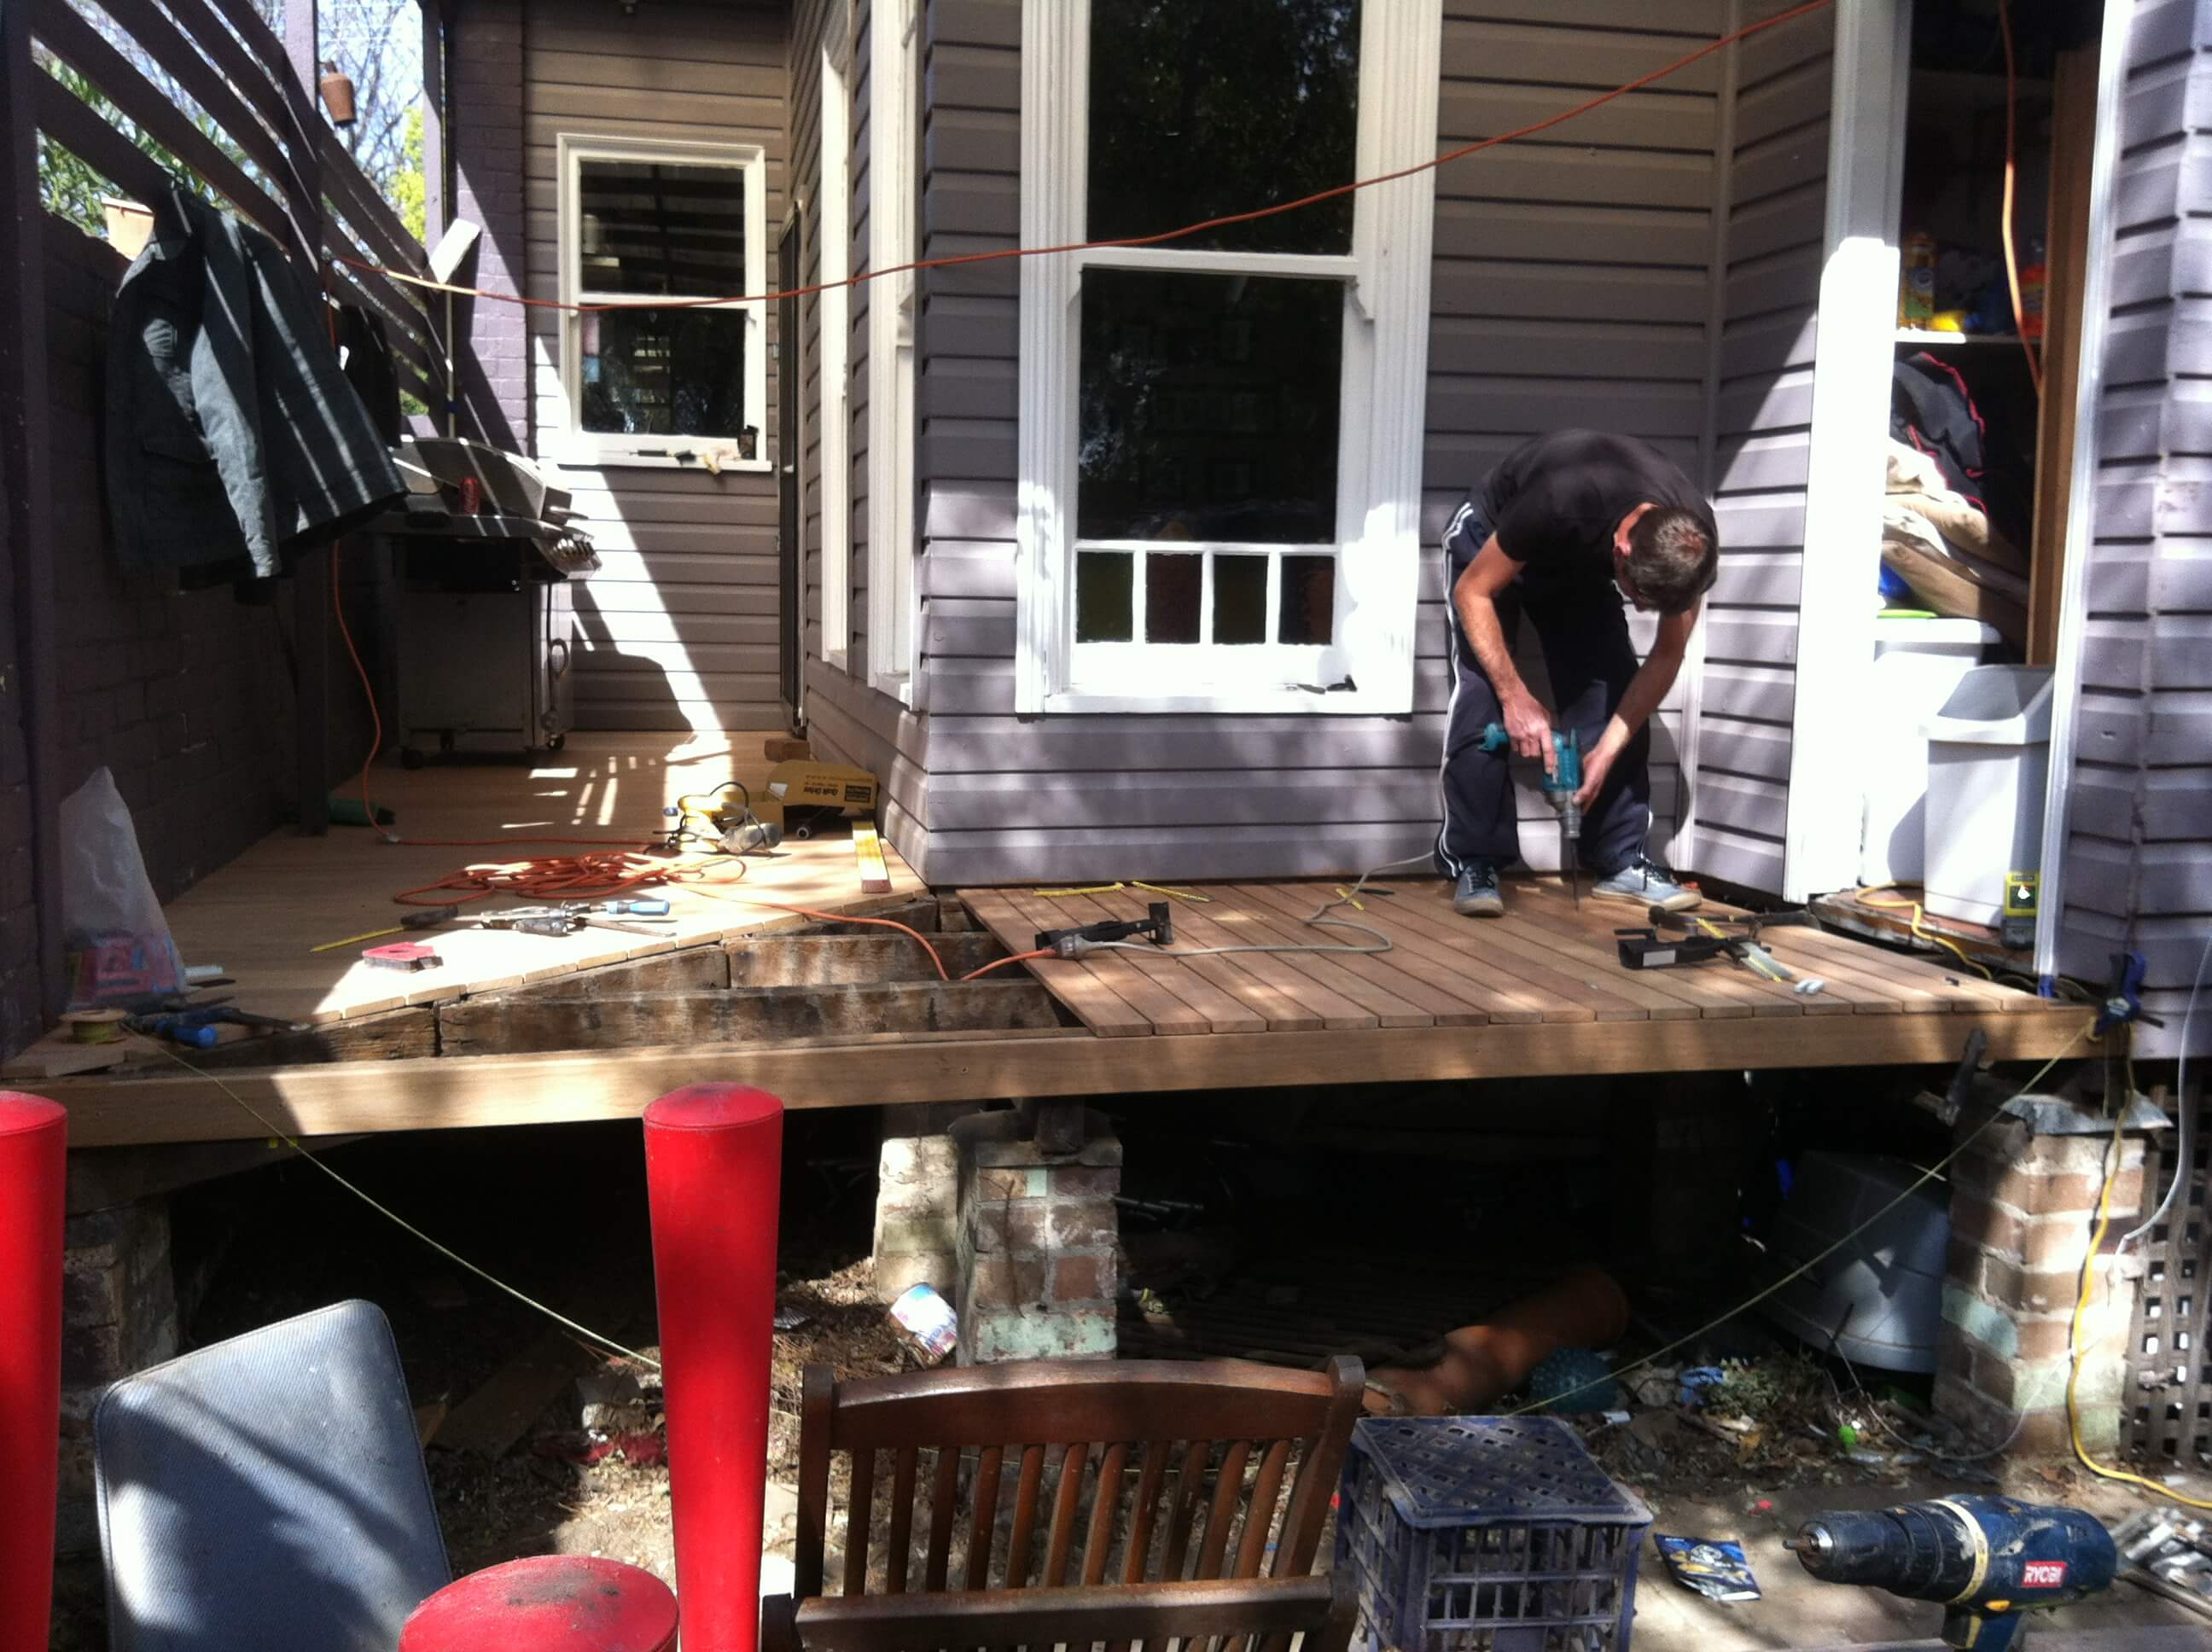 Before. Work in progress to renovate deck, screen and pergola in Leichhardt